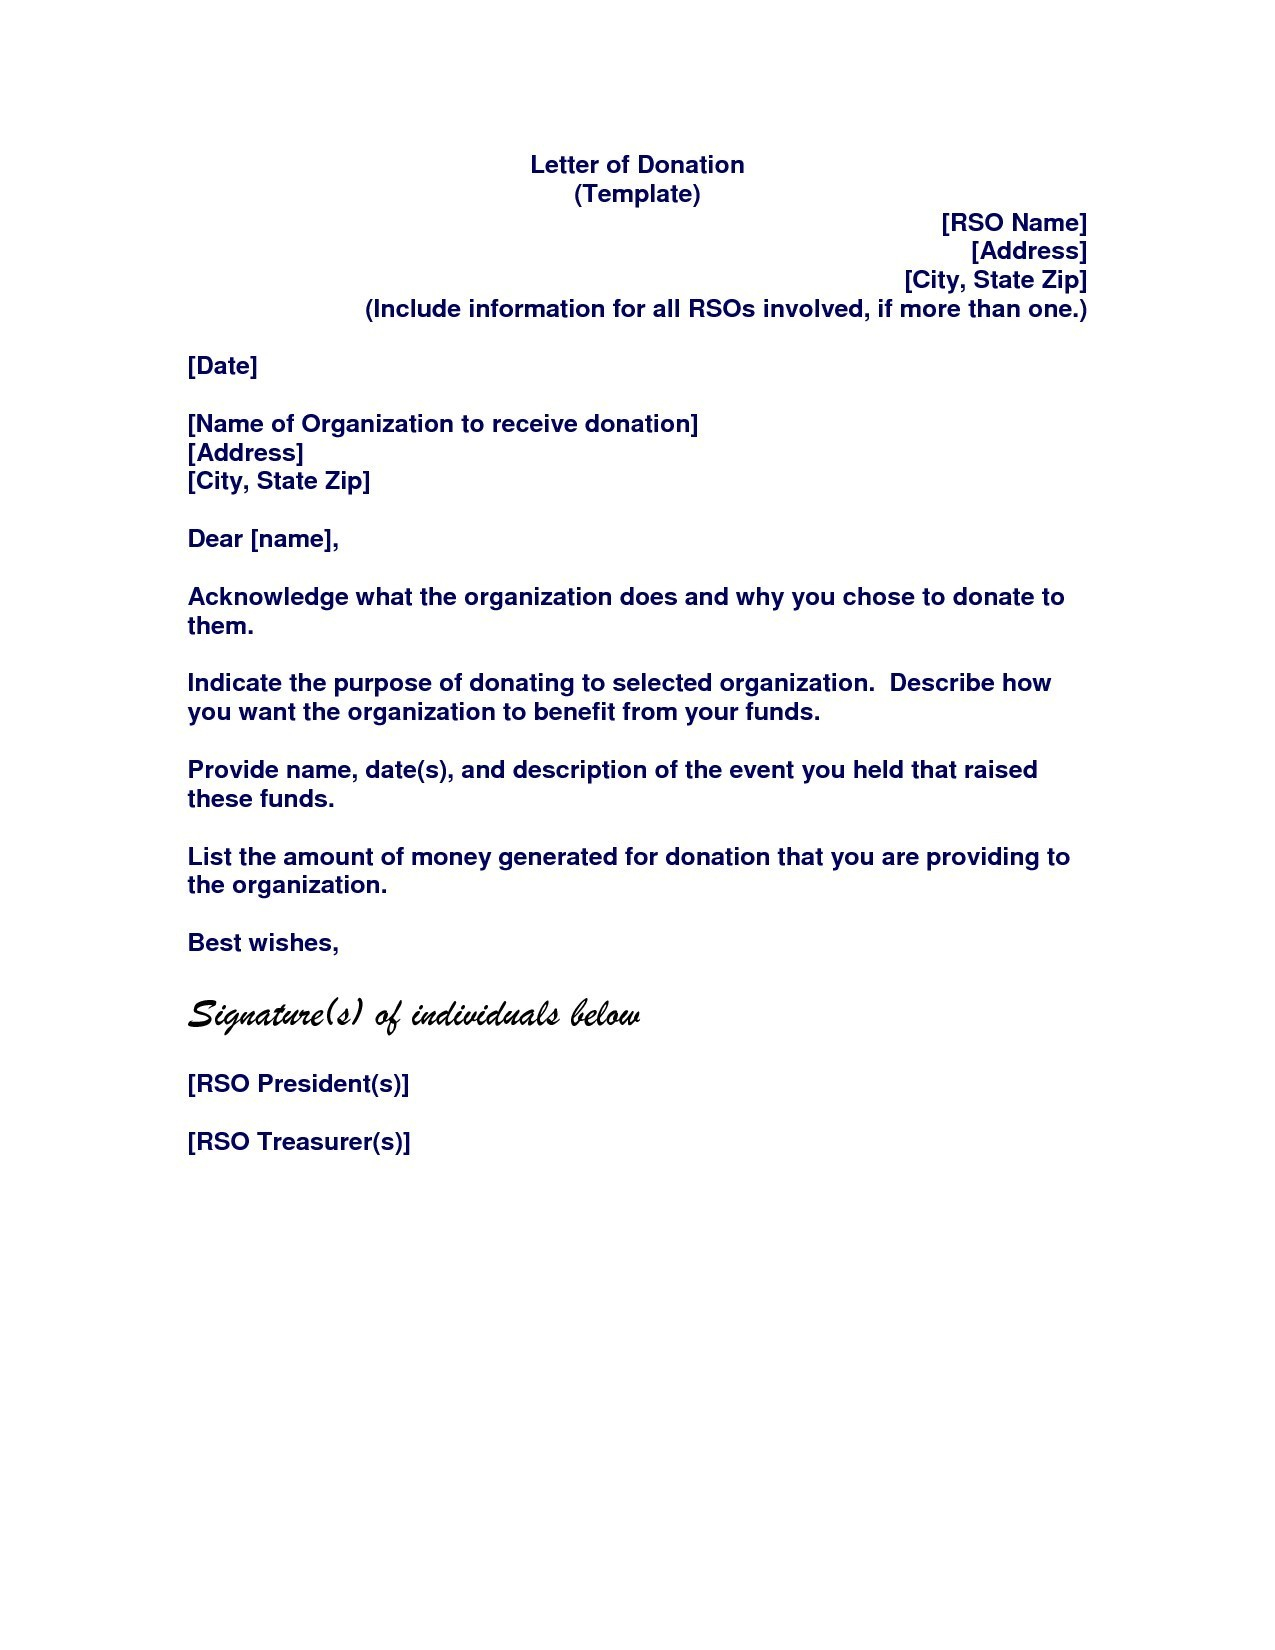 Fundraising Request for Donation Letter Template - Samples Letters Request Donation Inspirationa Samples Letters